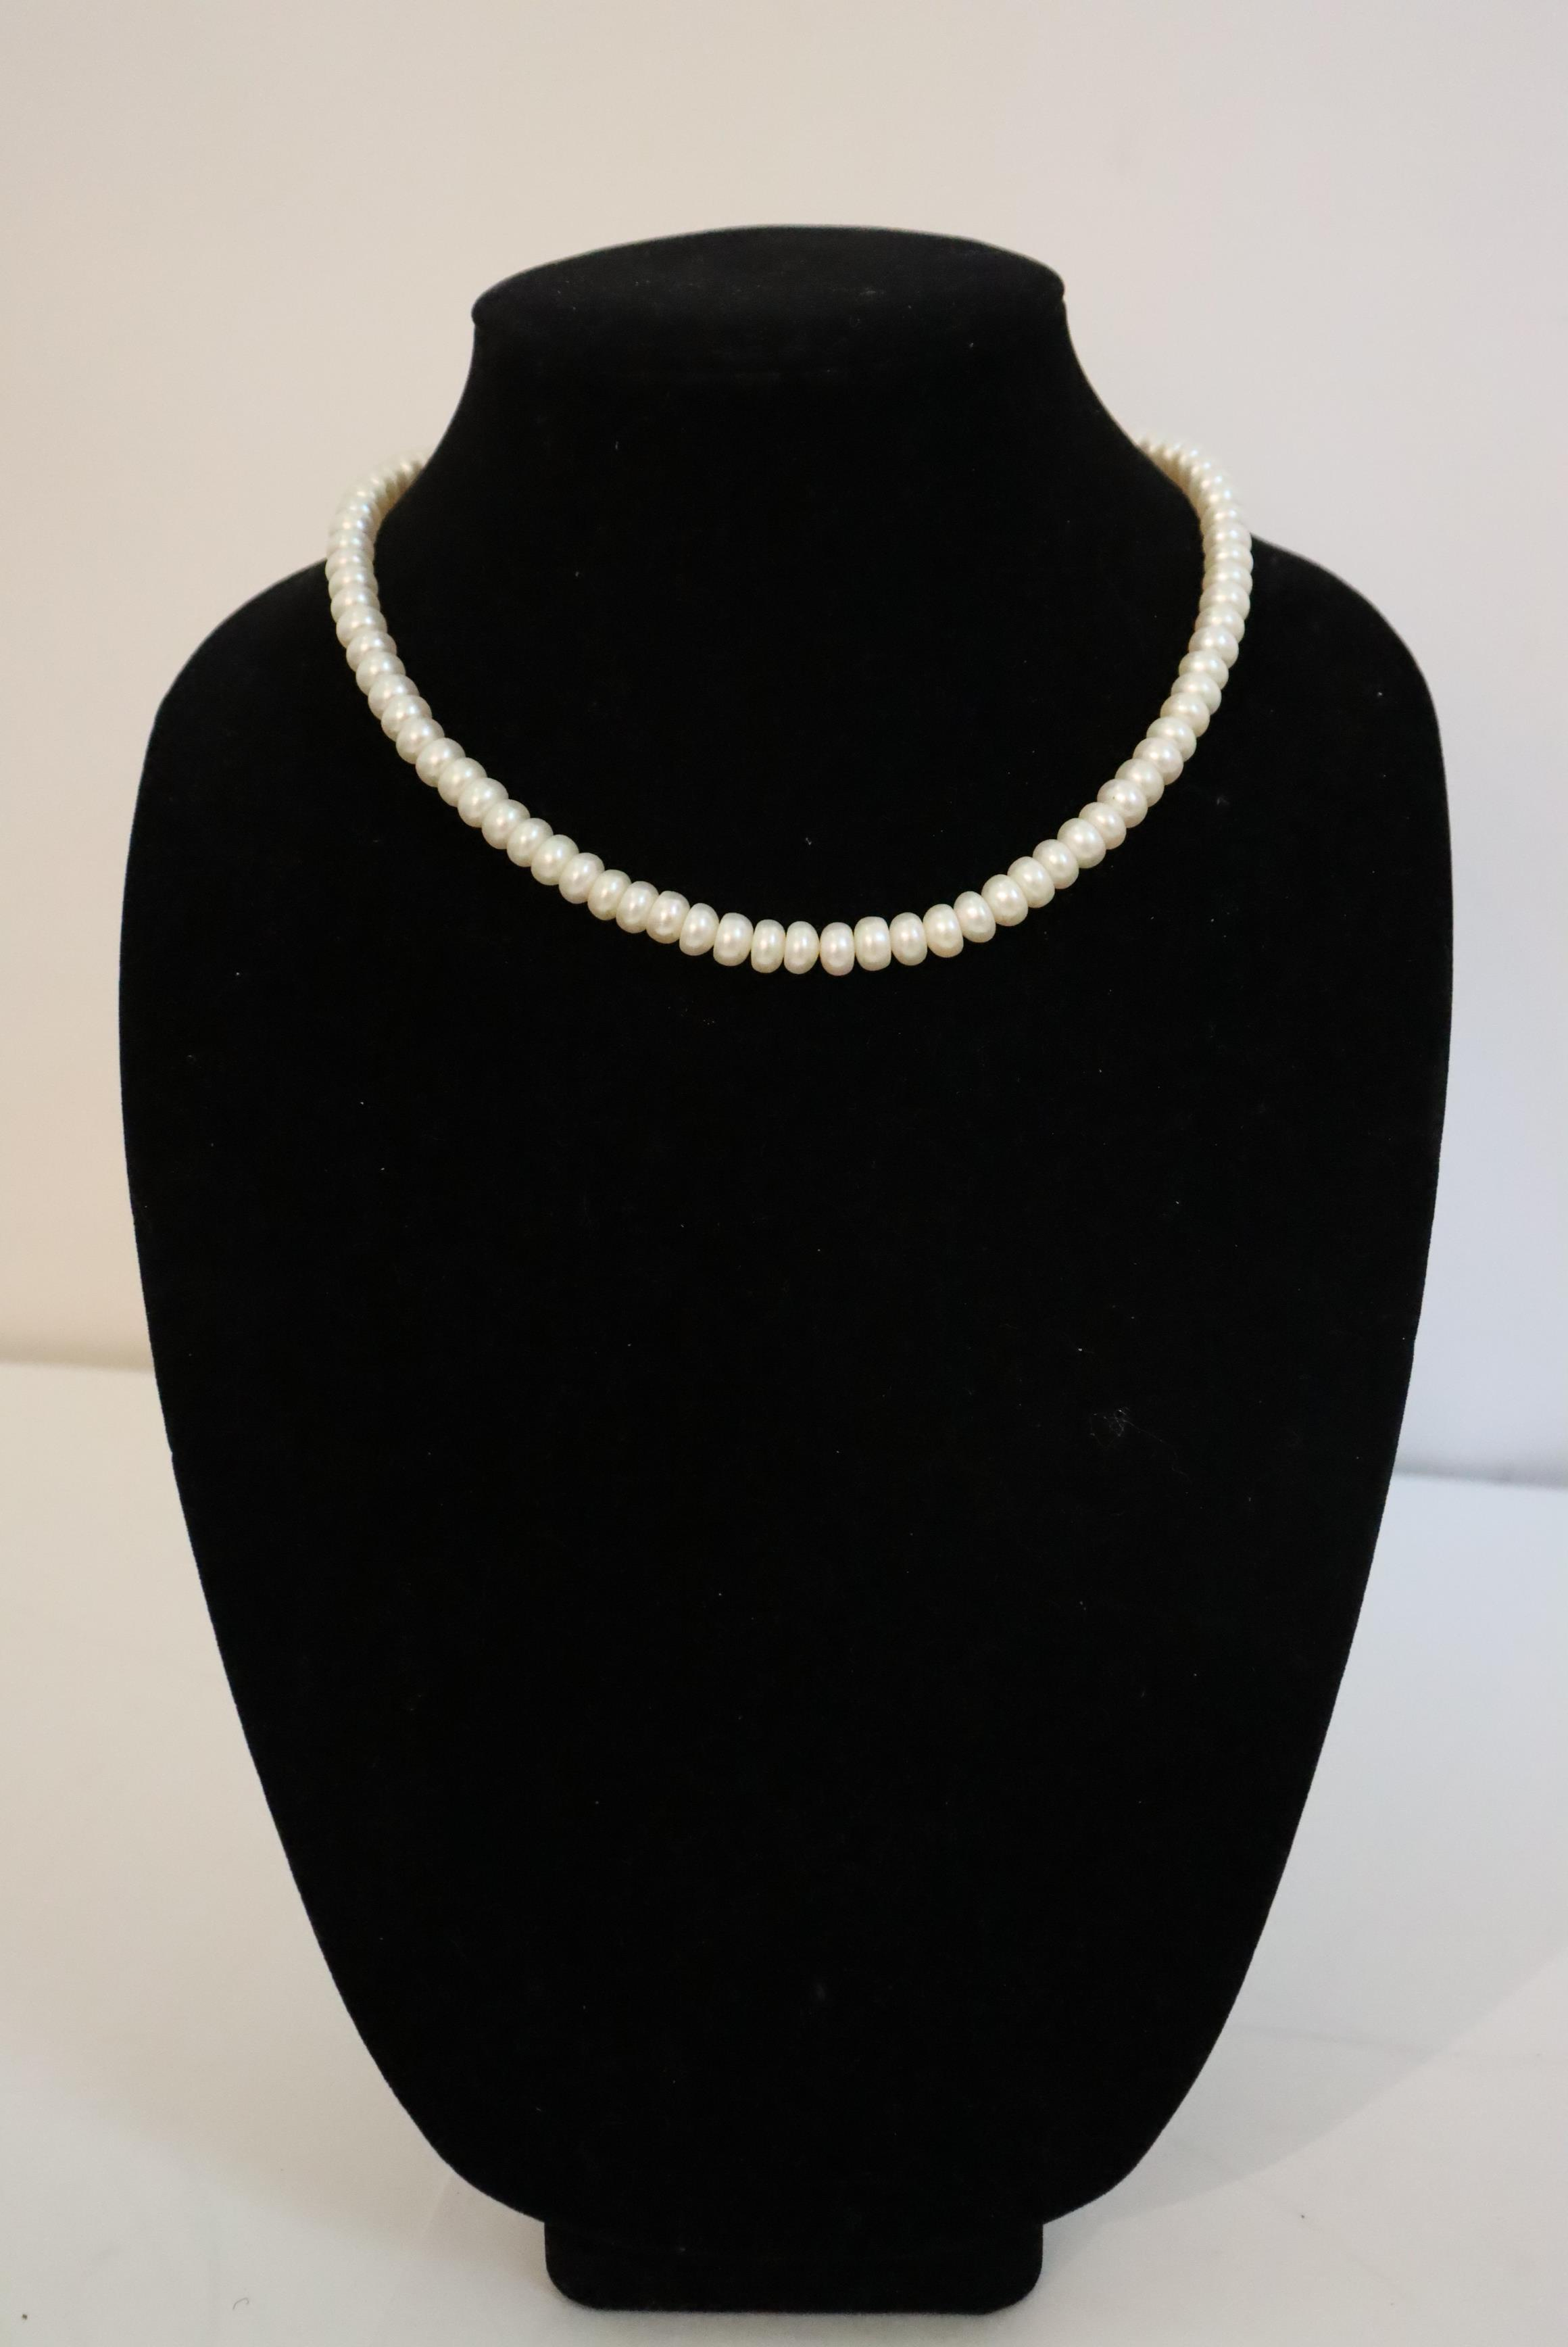 Large Collection of (10) Pearl / Beaded Necklaces - Image 4 of 20